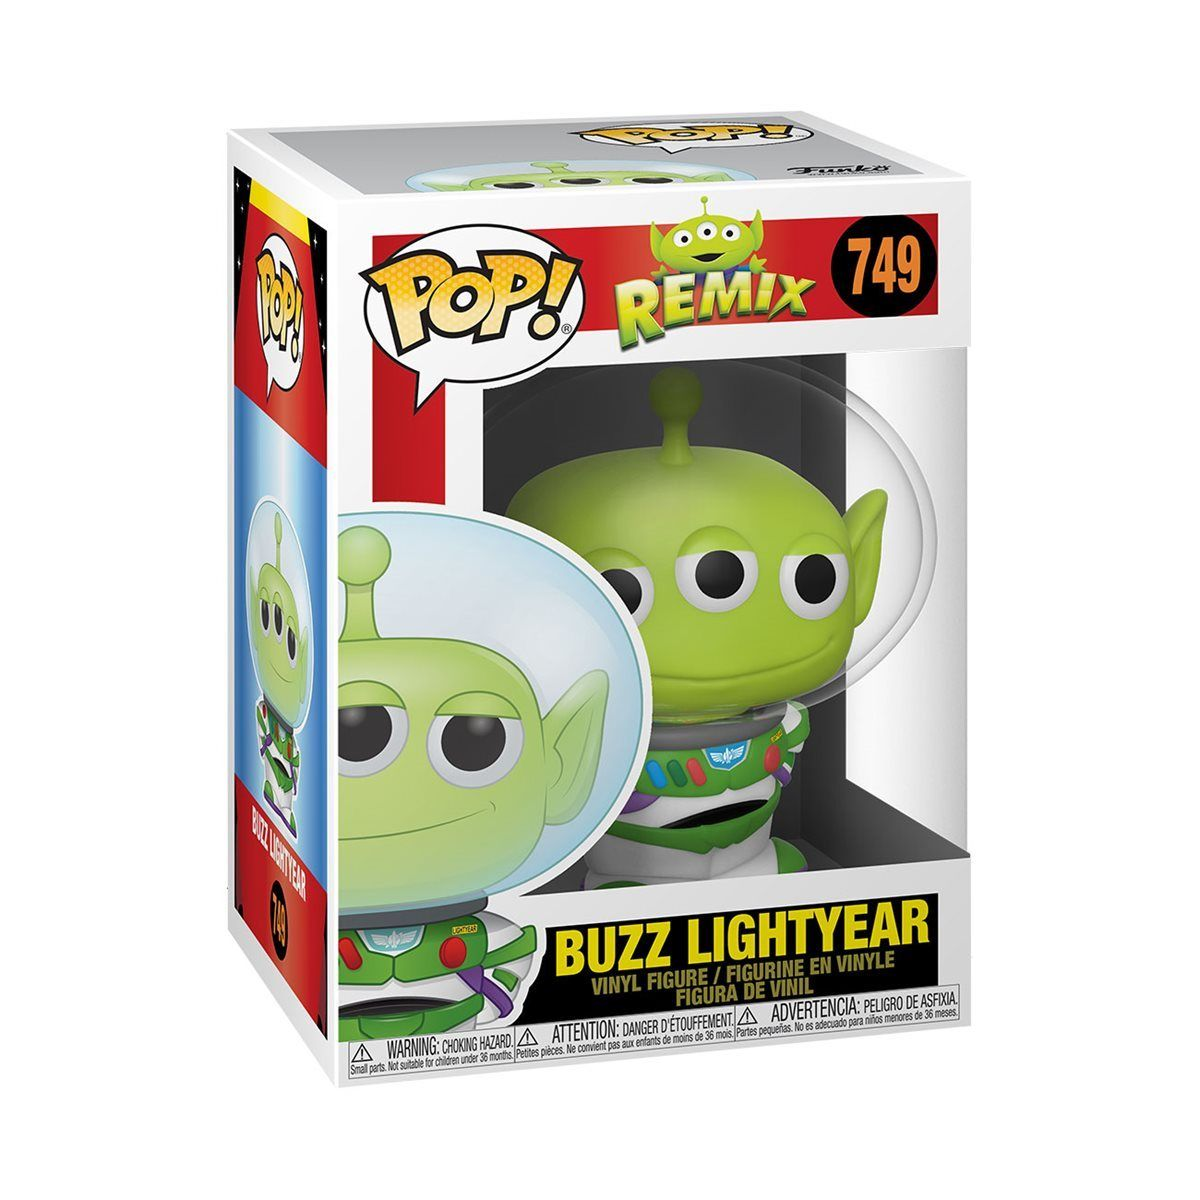 Buzz Lightyear #749 Toy Story Pixar Alien Remix Funko Pop! Disney [PRE-ORDER] Pop! Funko